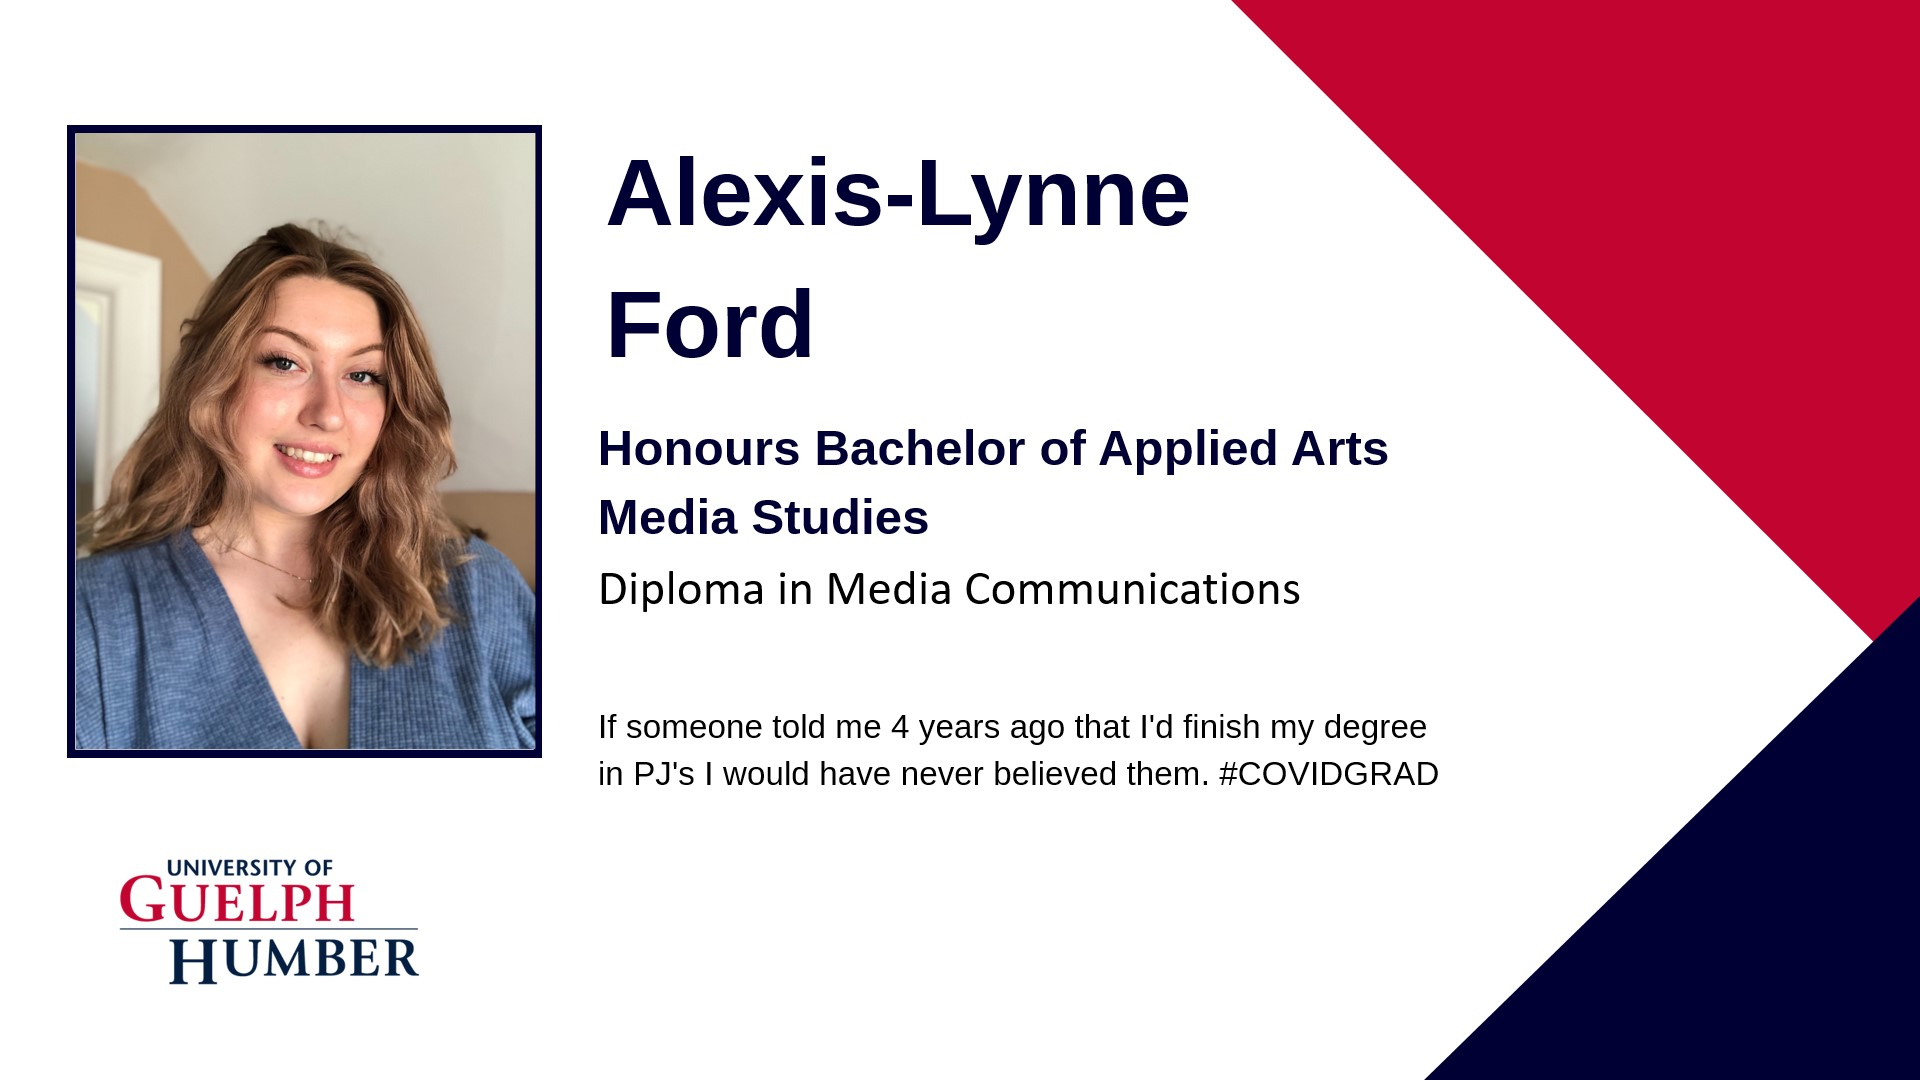 Sample graduate card for Alexis-Lynne Ford: Portrait, Student name, Degree name, Diploma name, Student quote